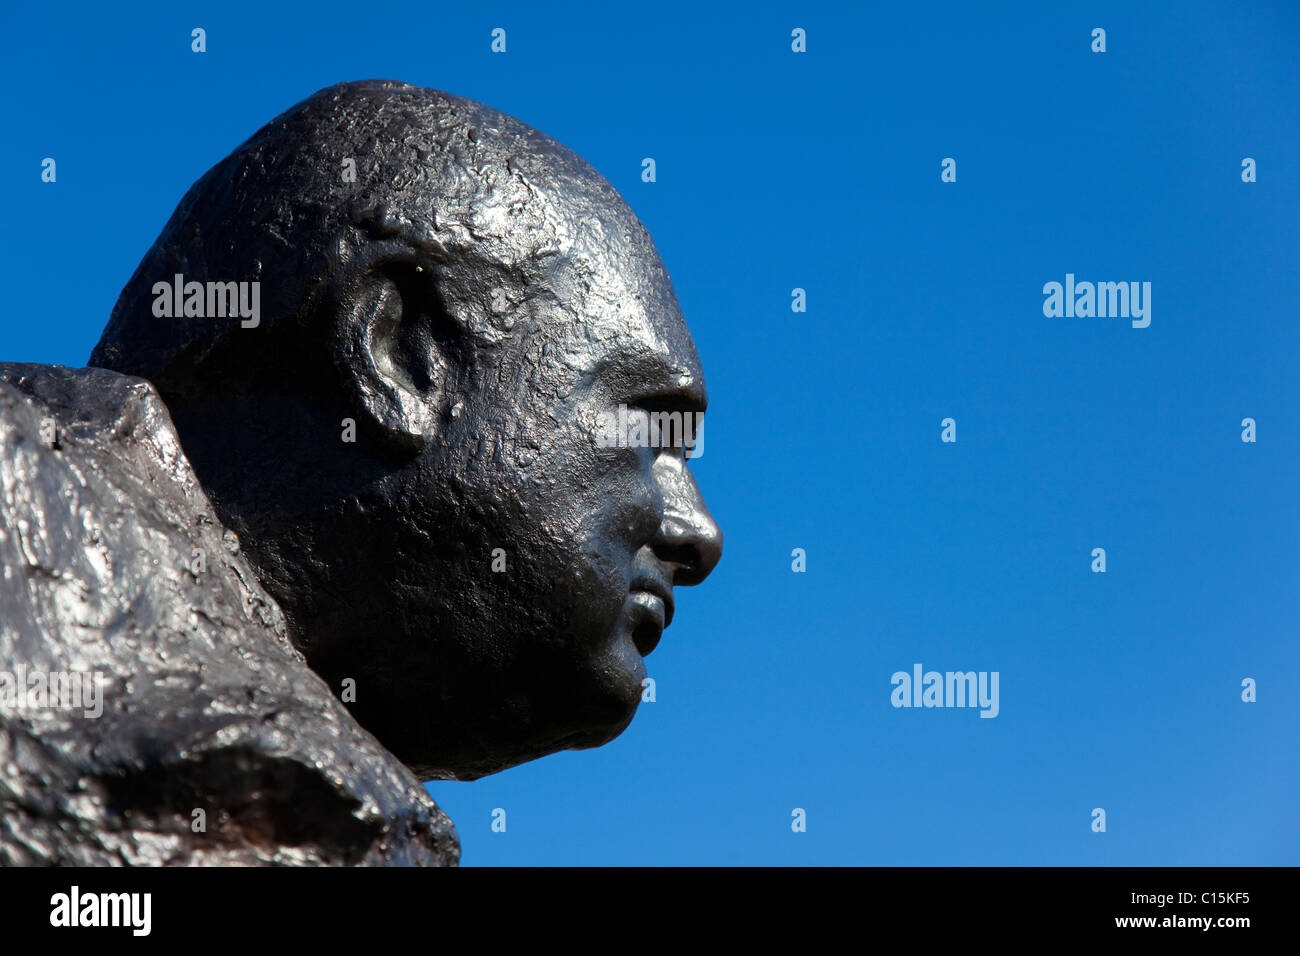 Detail of statue of Sir Winston Churchill by Oscar Nemon on the Green at Westerham, near Chartwell, Kent, UK - Stock Image